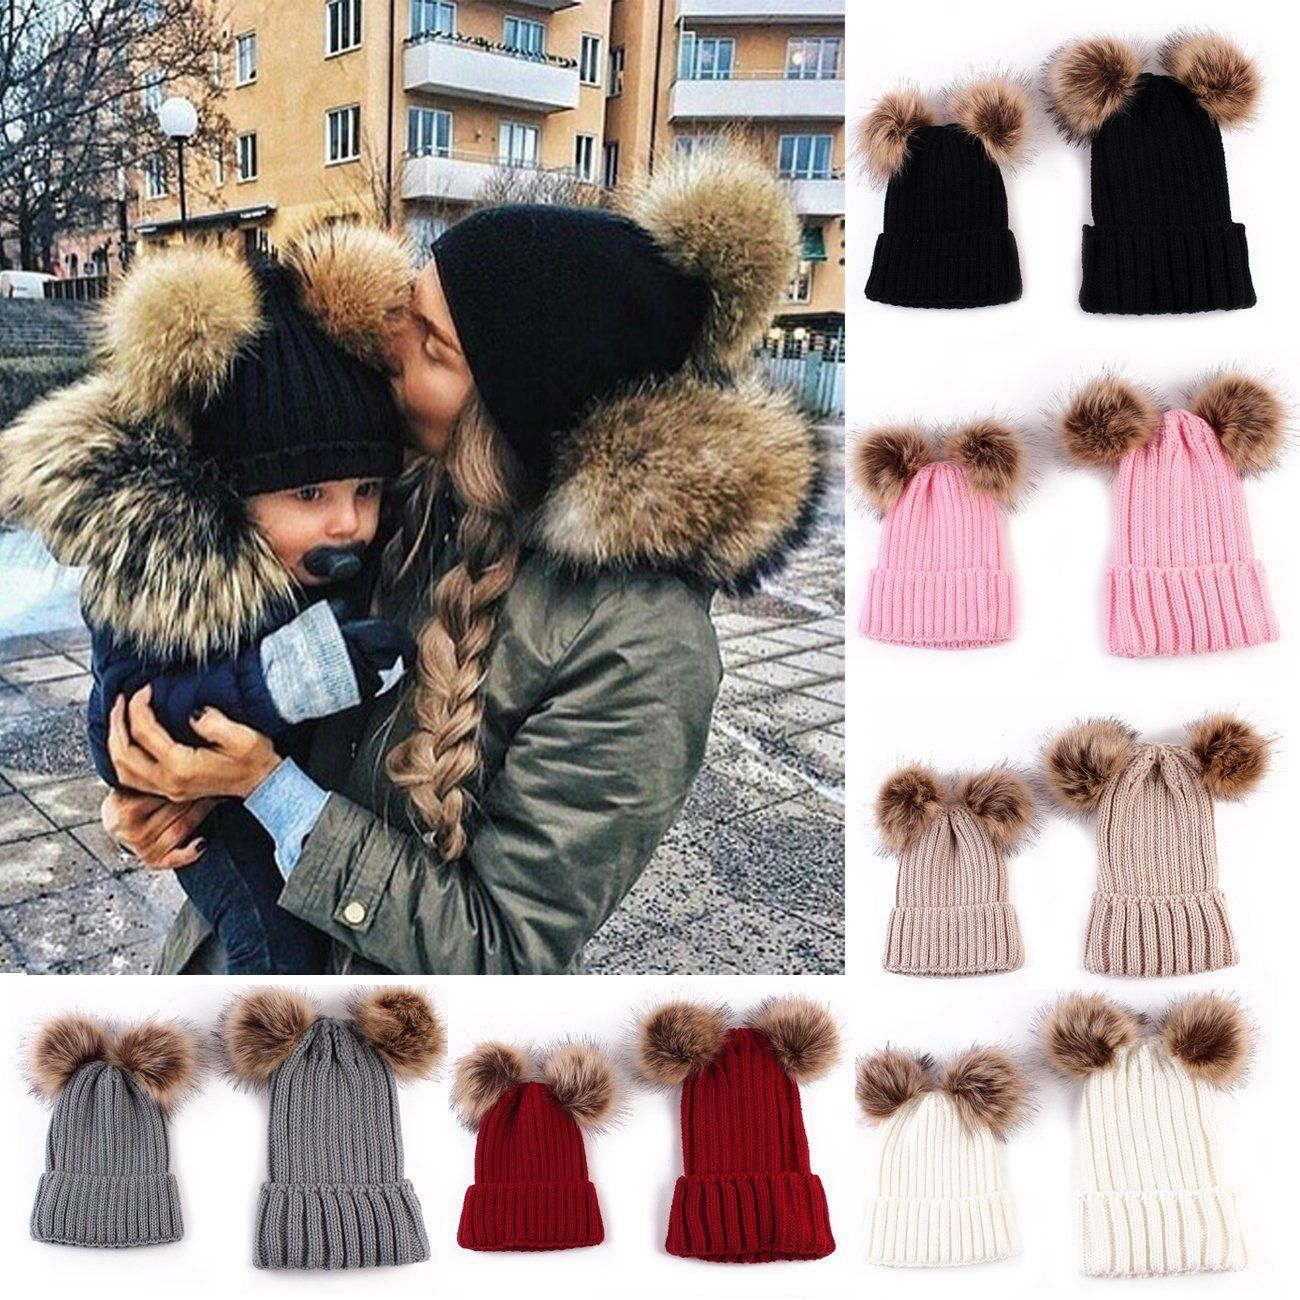 752da3fa5c6 2Pcs Mom Mother+Baby Knit Pom Bobble Hat Kids Girls Boys Winter Warm Beanie  Cap